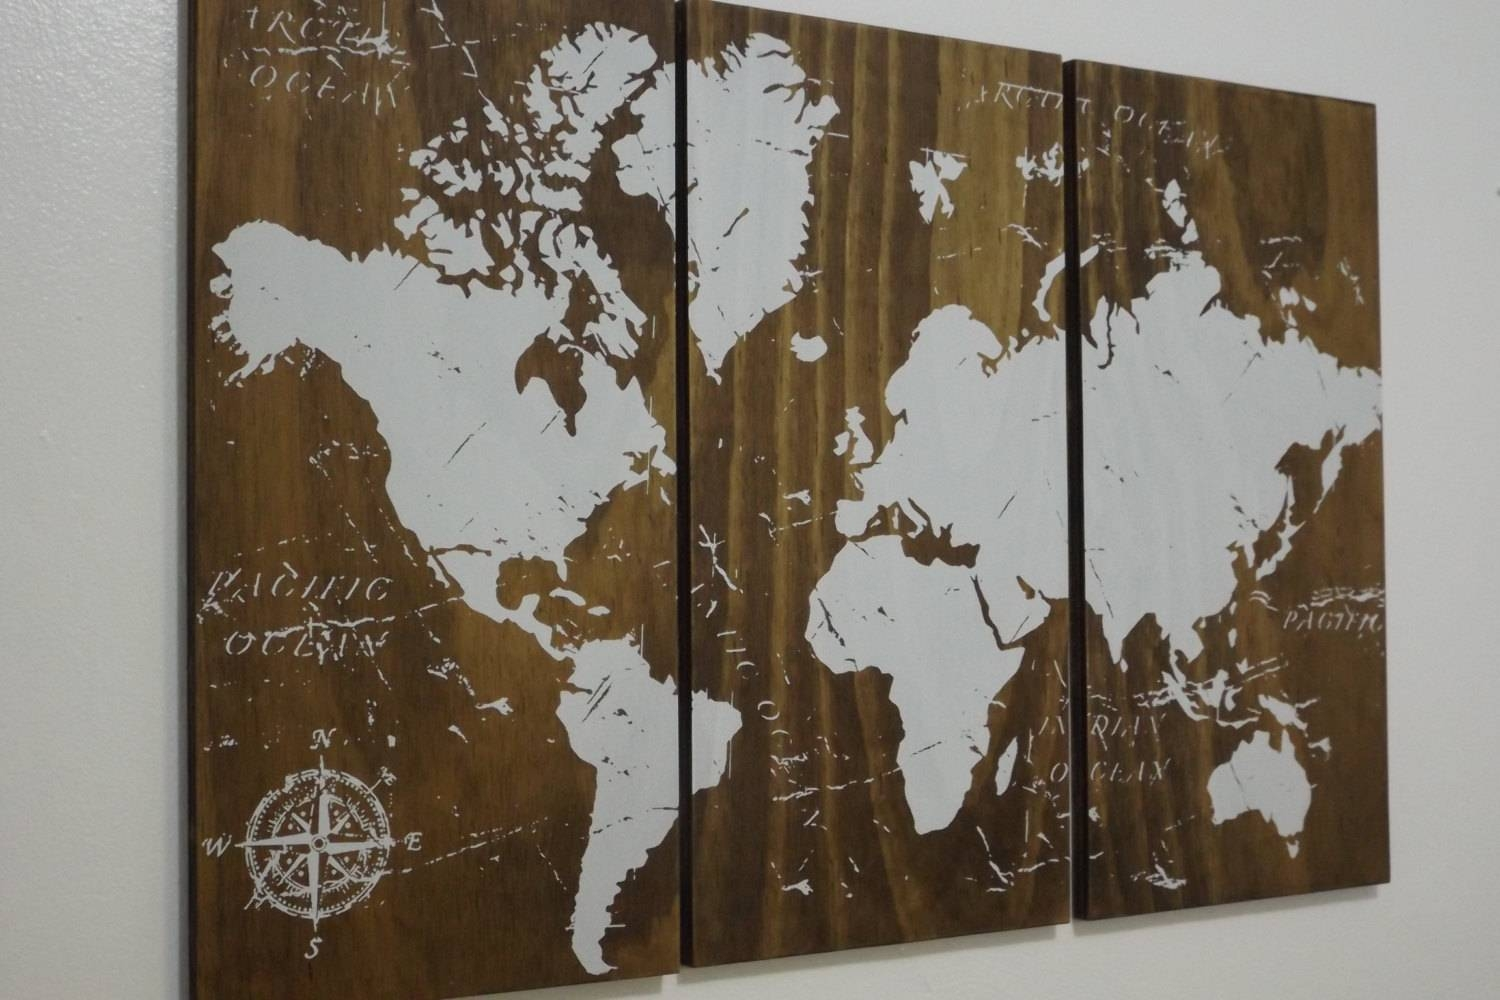 Old World Map Push Pin Travel Map Solid Wood Wall Art Pertaining To 2018 Travel Map Wall Art (View 13 of 20)